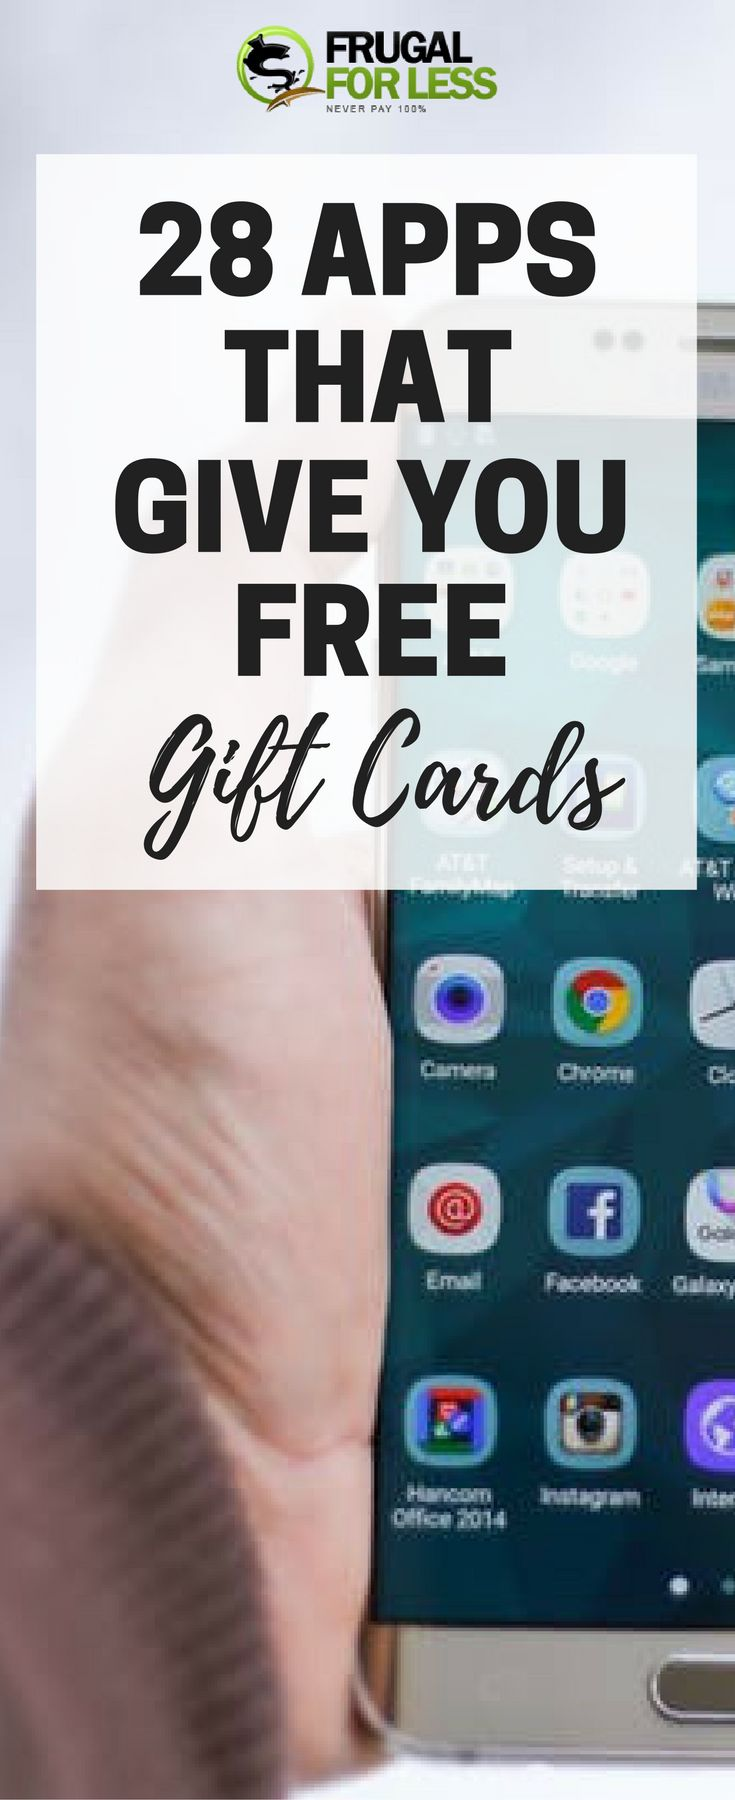 28+ Free Gift Card Apps That Actually Work (Updated 2019) – Frugal For Less | Frugal Living and Make Money From Home